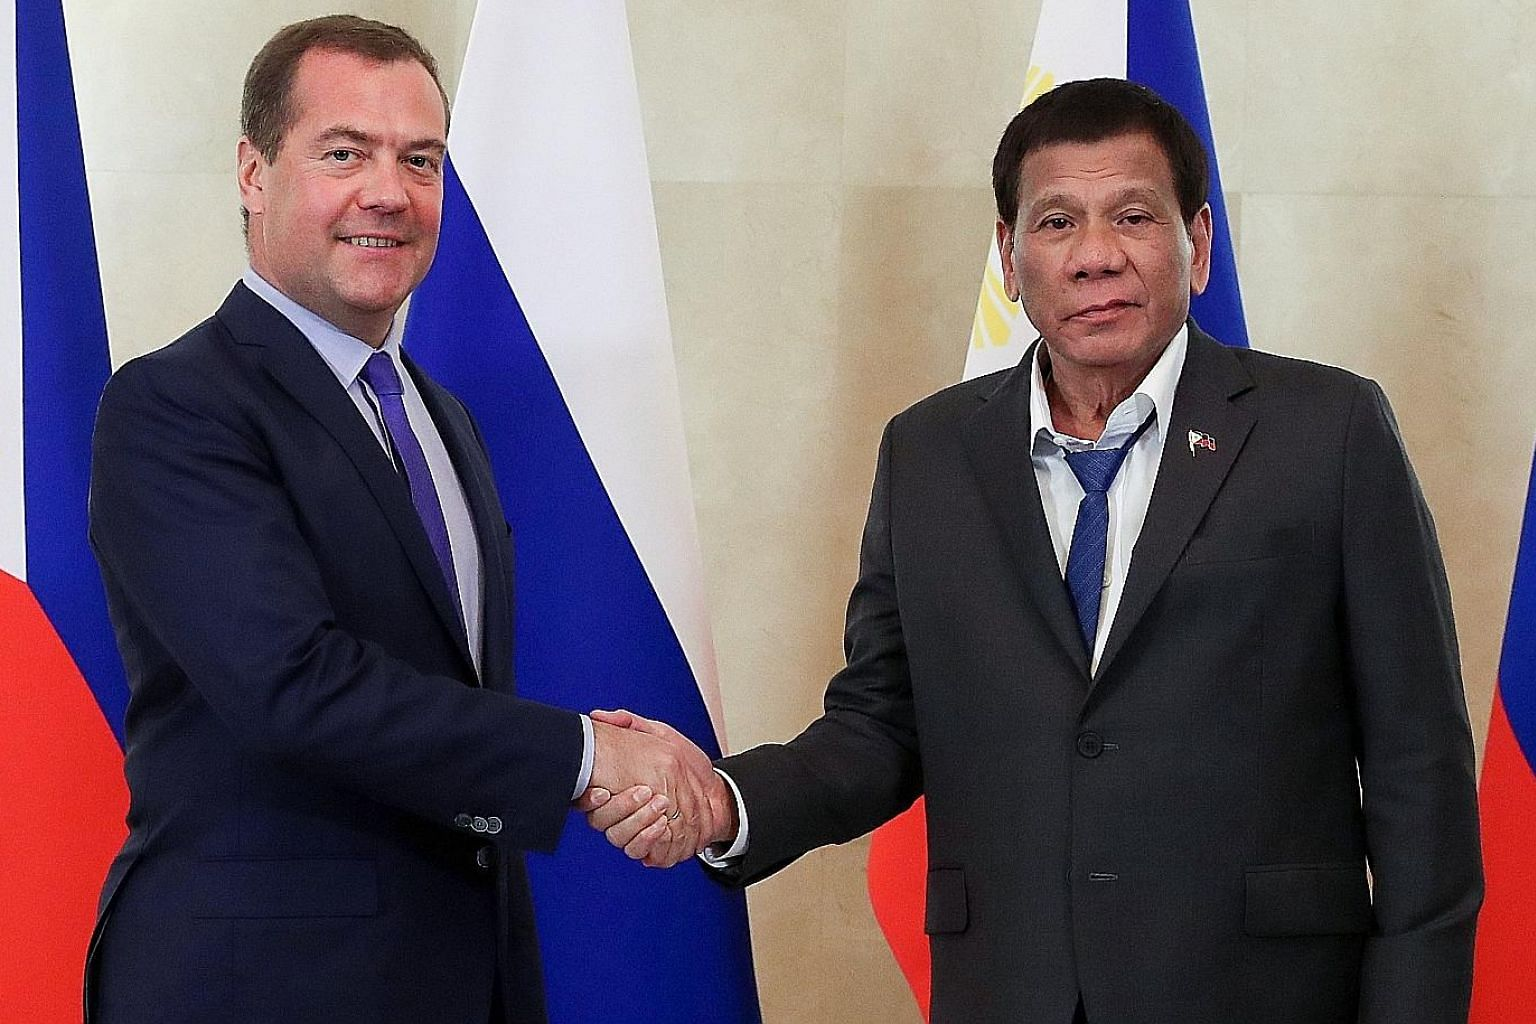 At his meeting on Wednesday in Moscow with Russian Prime Minister Dmitry Medvedev, Philippine President Rodrigo Duterte wore a dark grey suit that seemed to have been taken off a mall rack, a shirt with unbuttoned collar that needed ironing and a loo